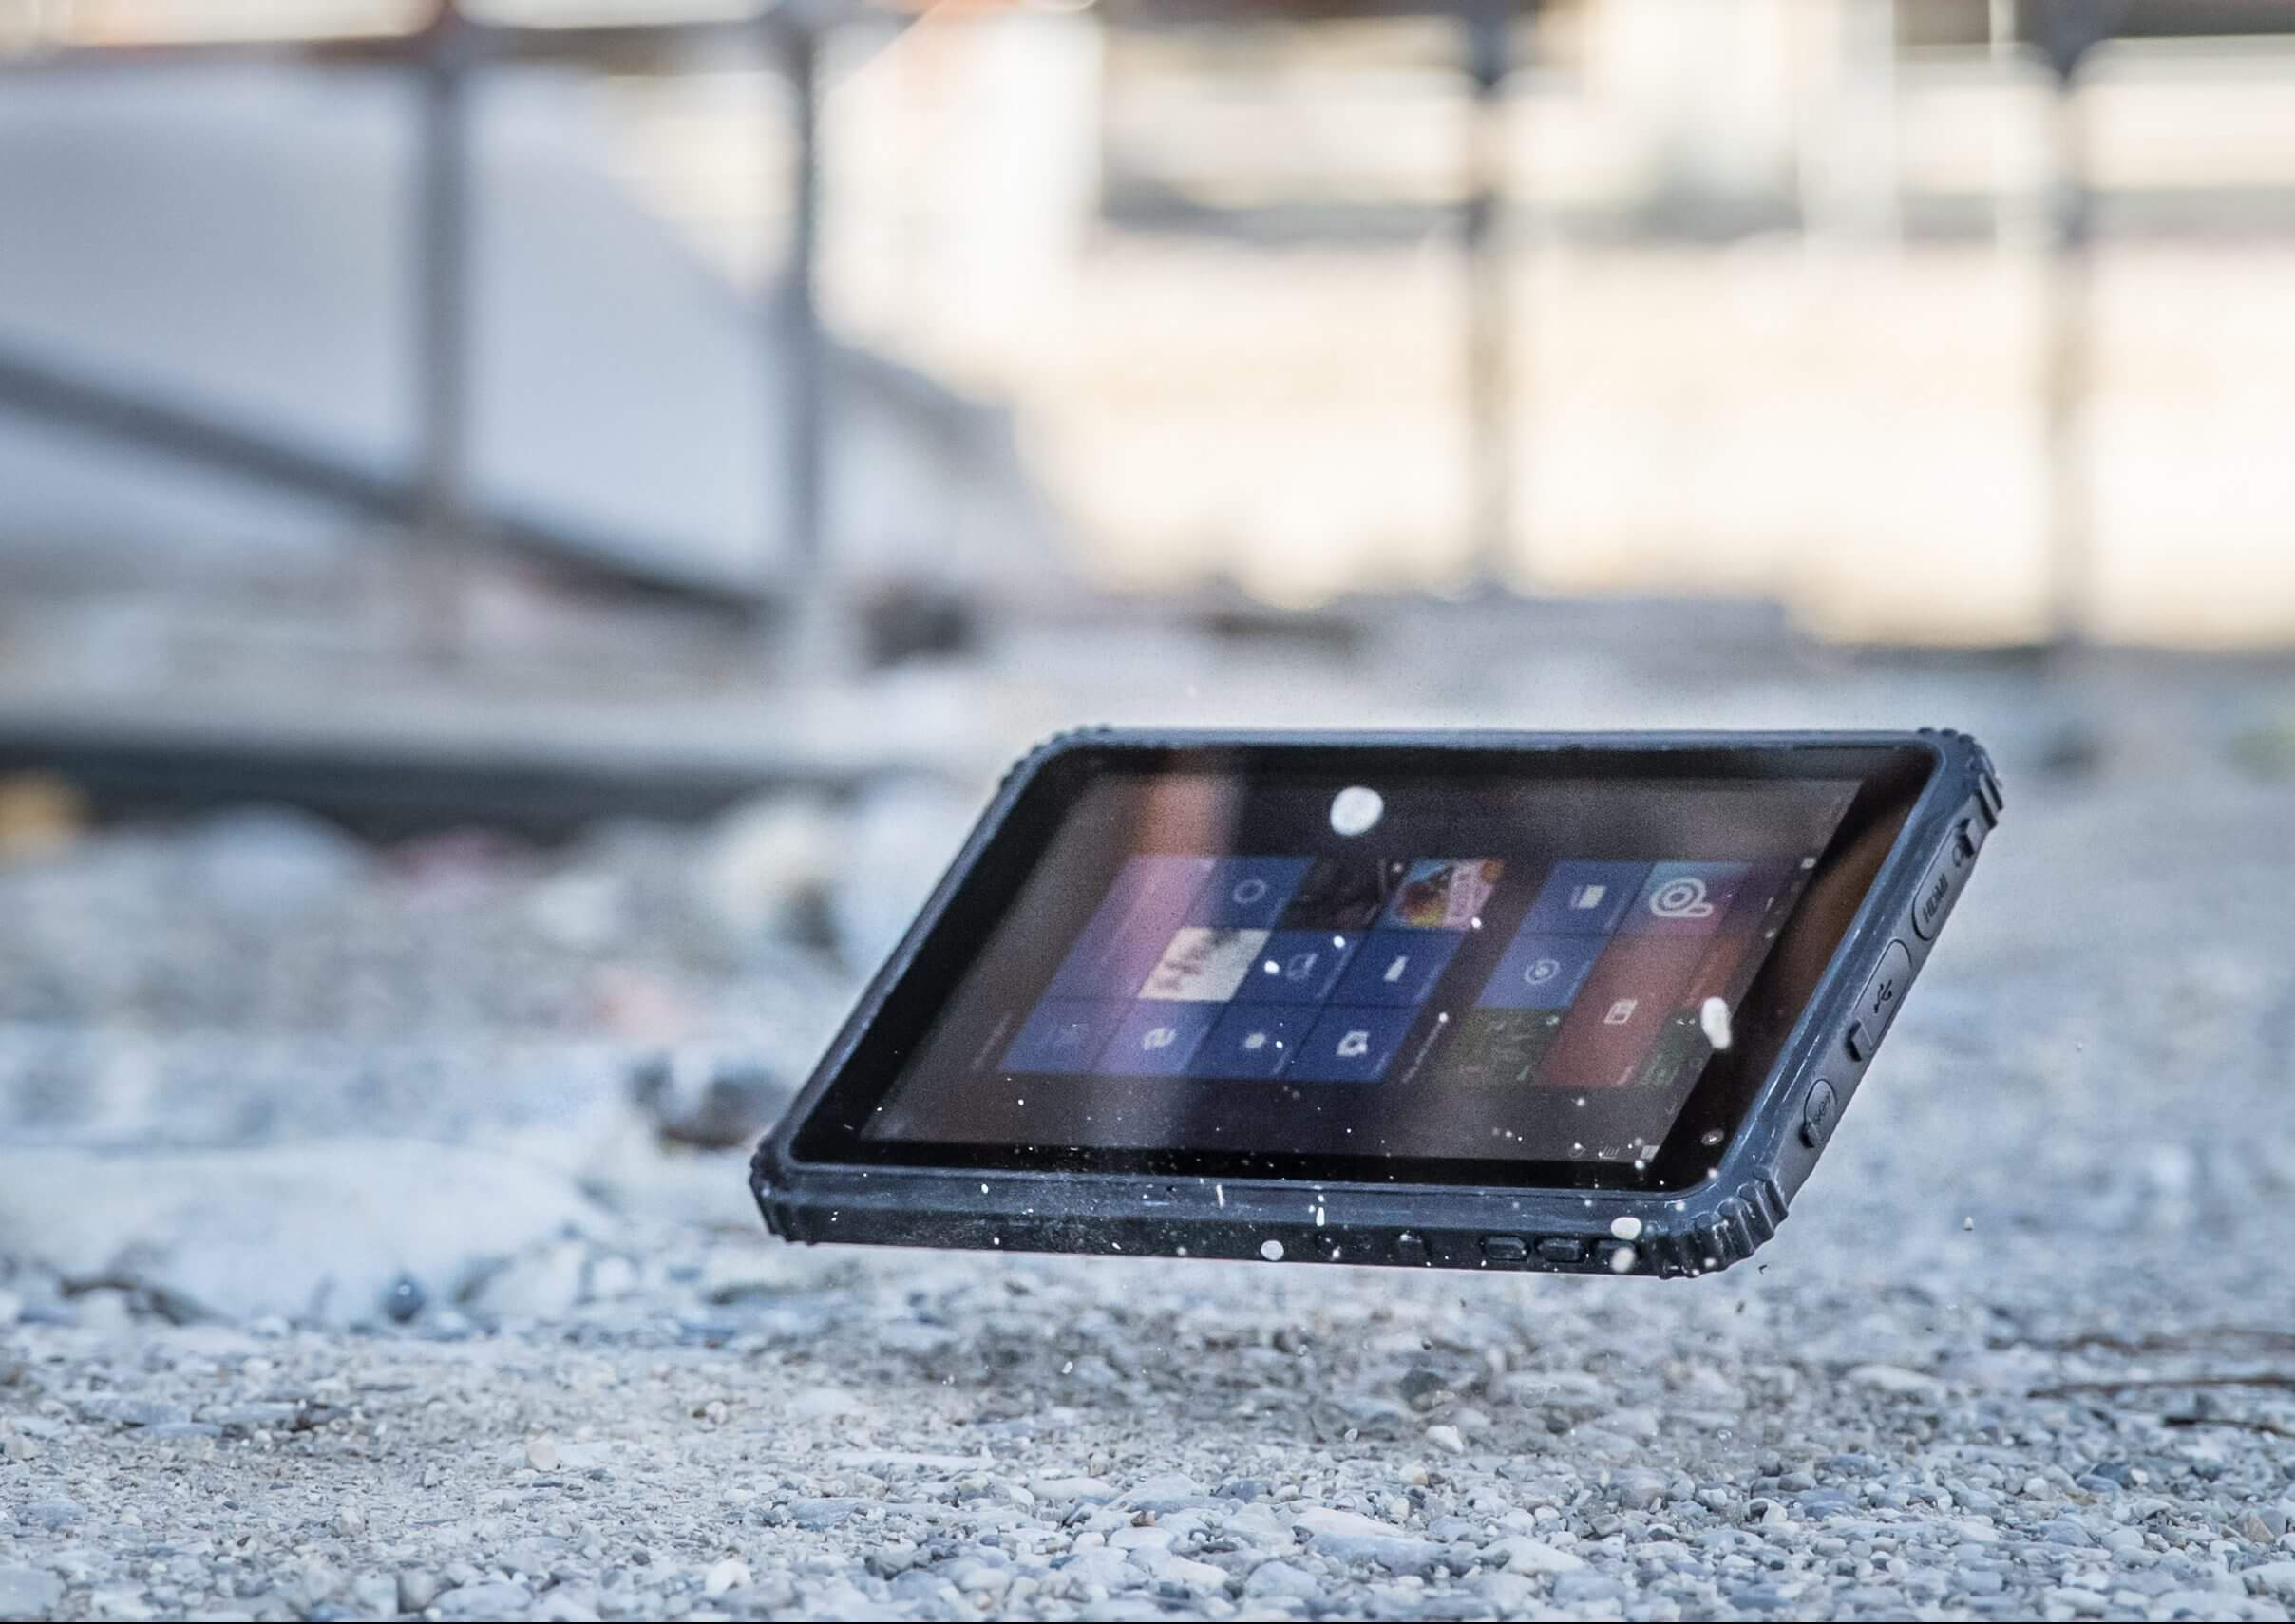 Caterpillar Unveils Its First Tablet Windows 10 Based T20